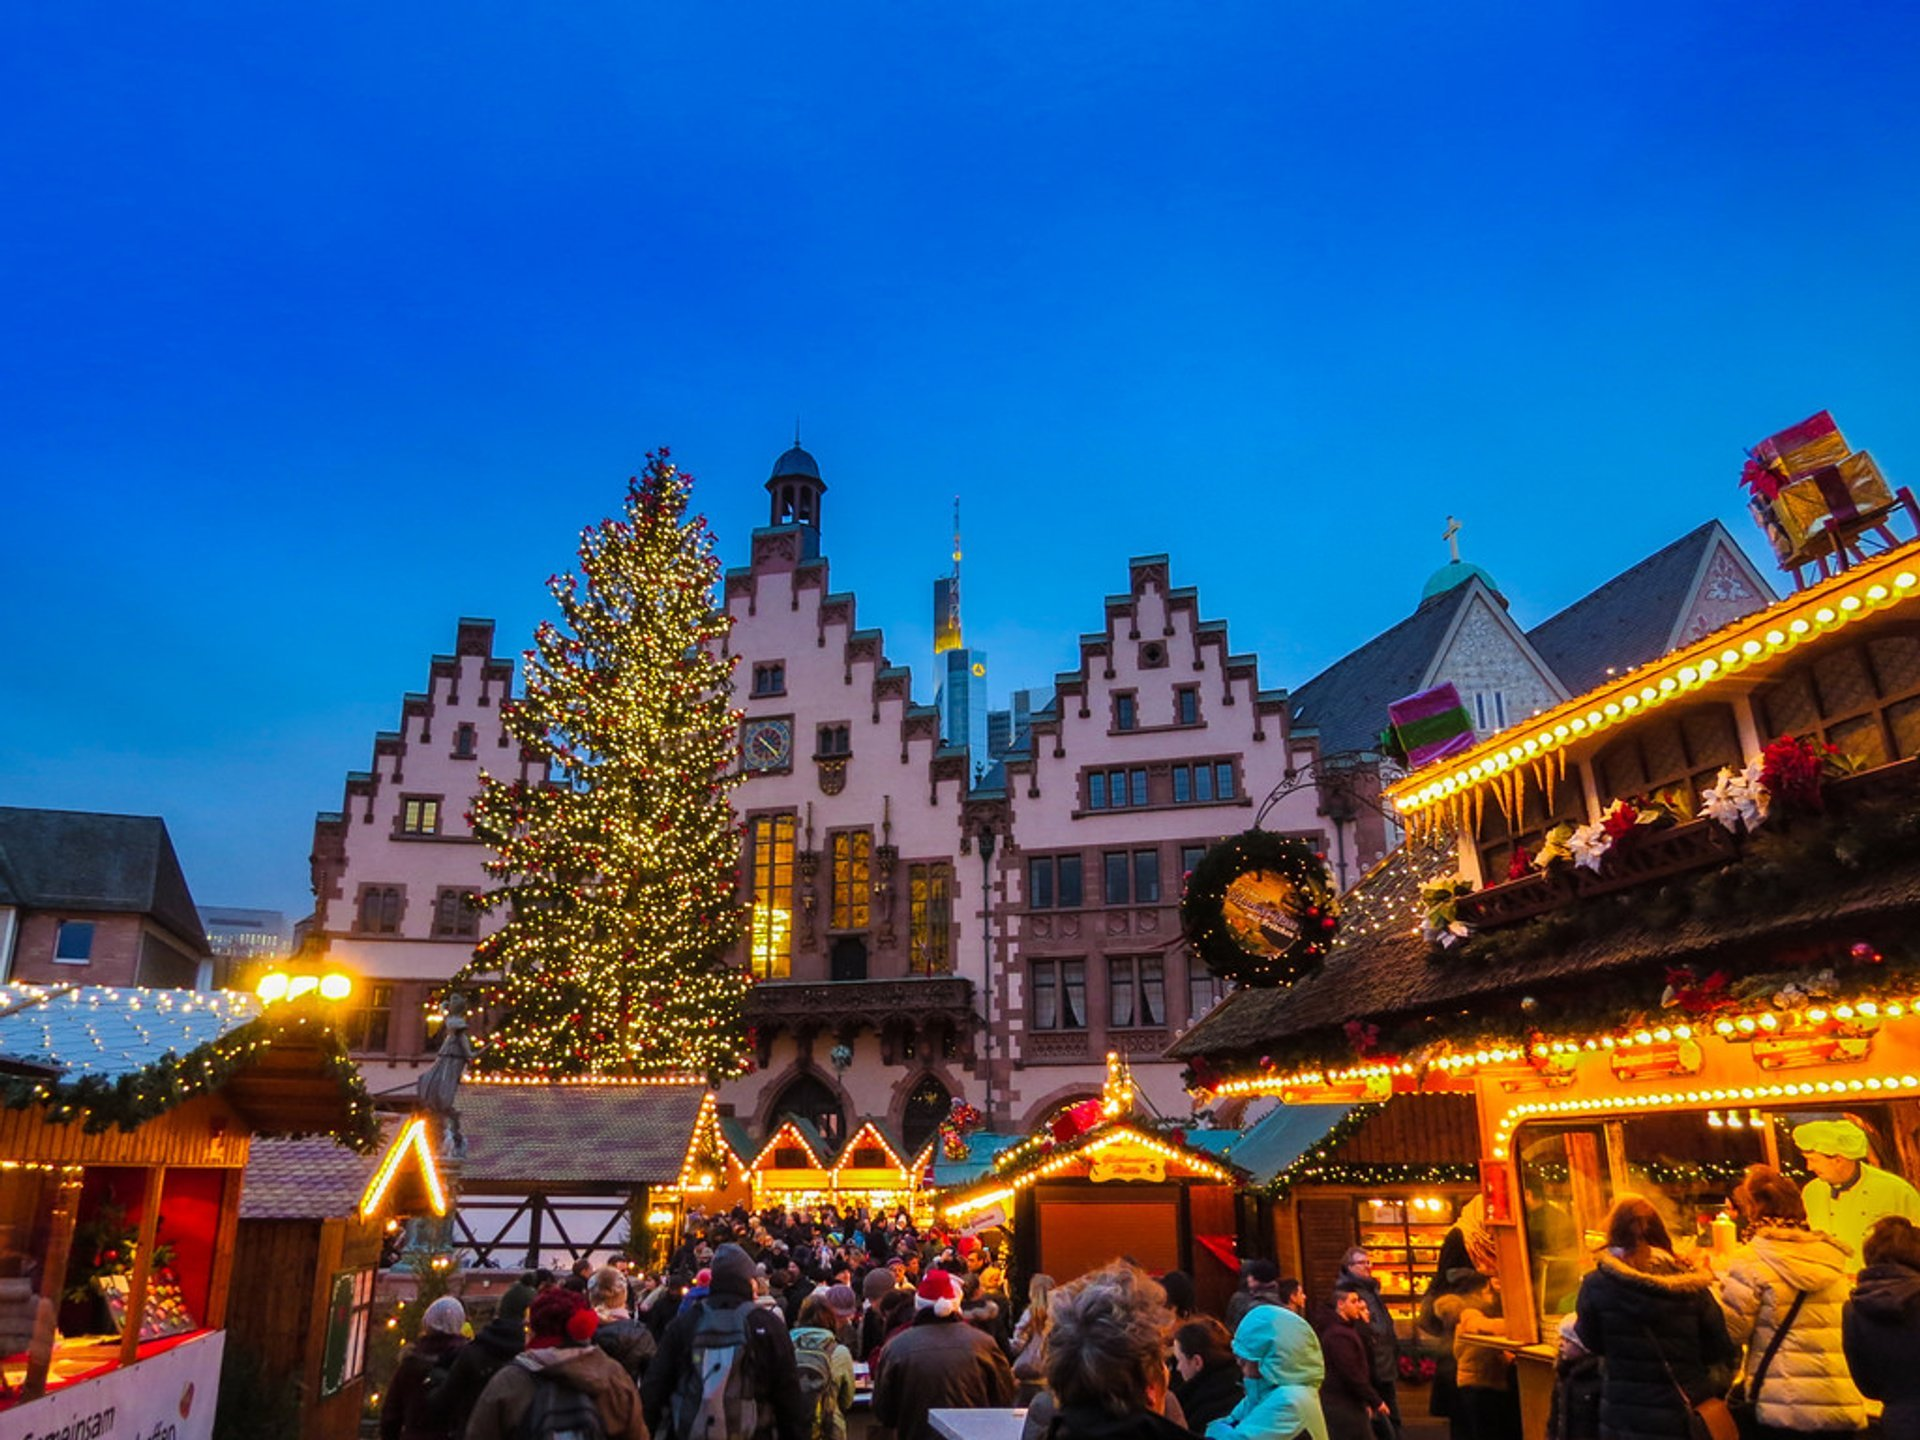 Christmas Markets Germany 2020 Christmas Markets 2020 in Germany   Dates & Map